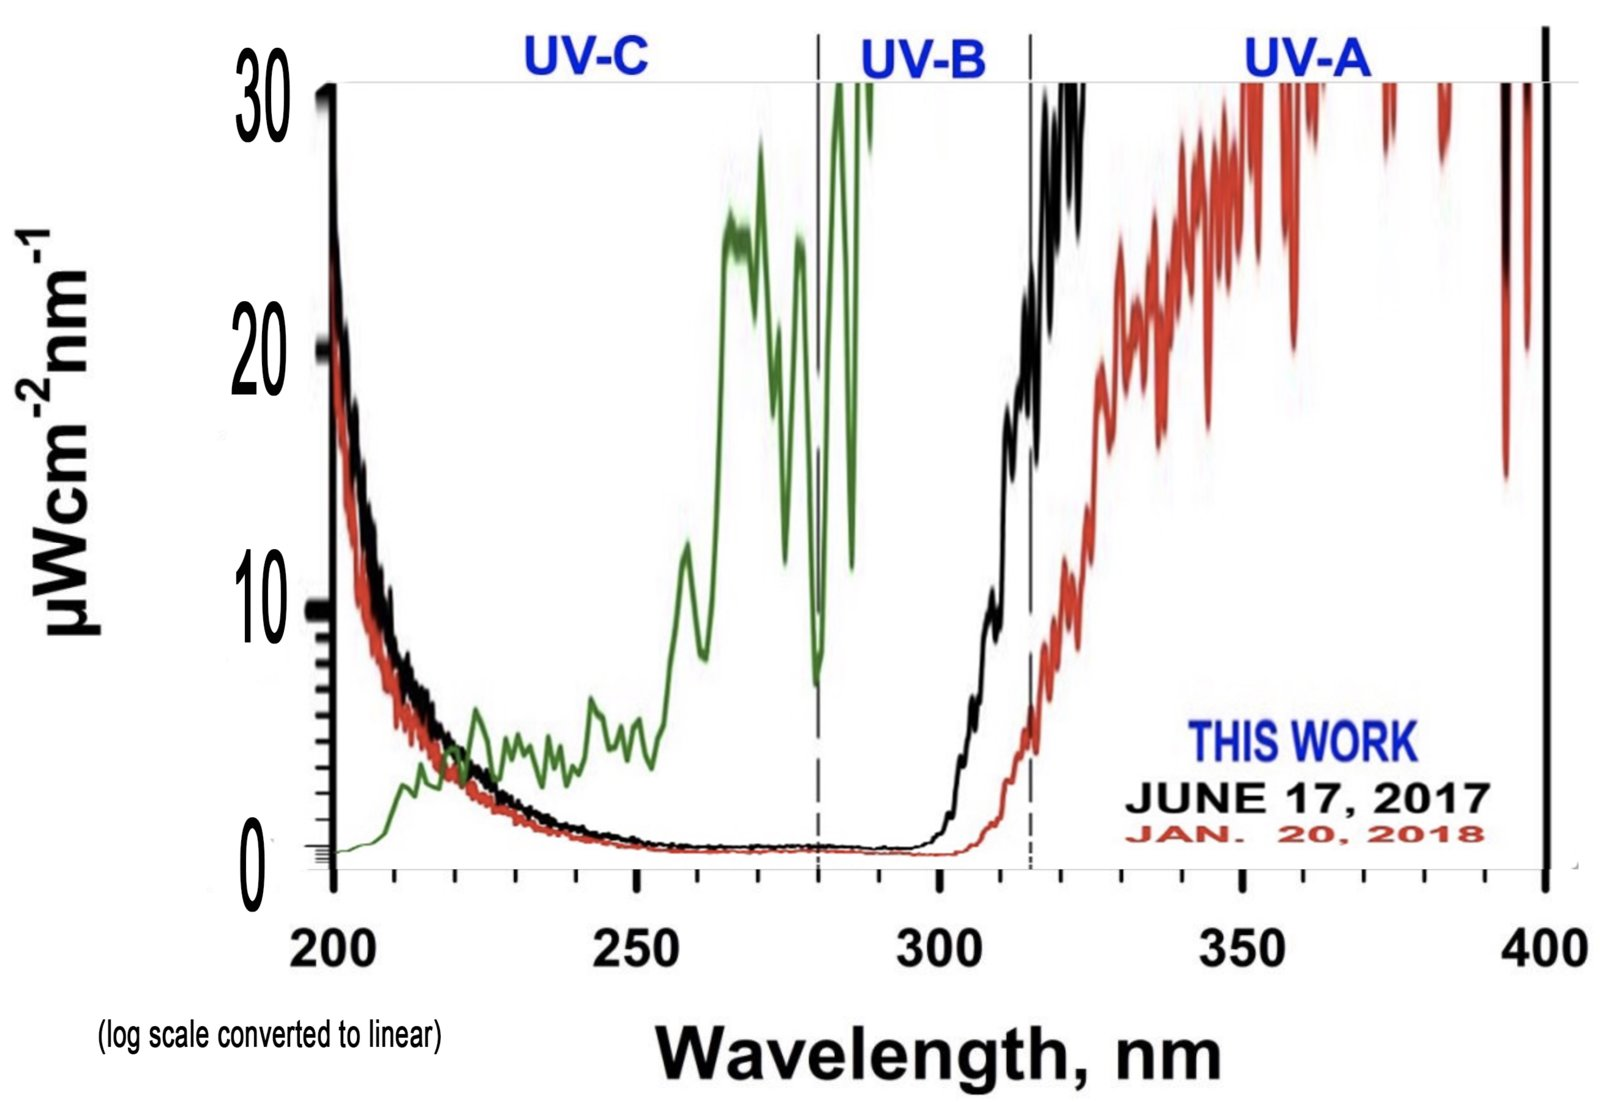 Whole uv light penetration